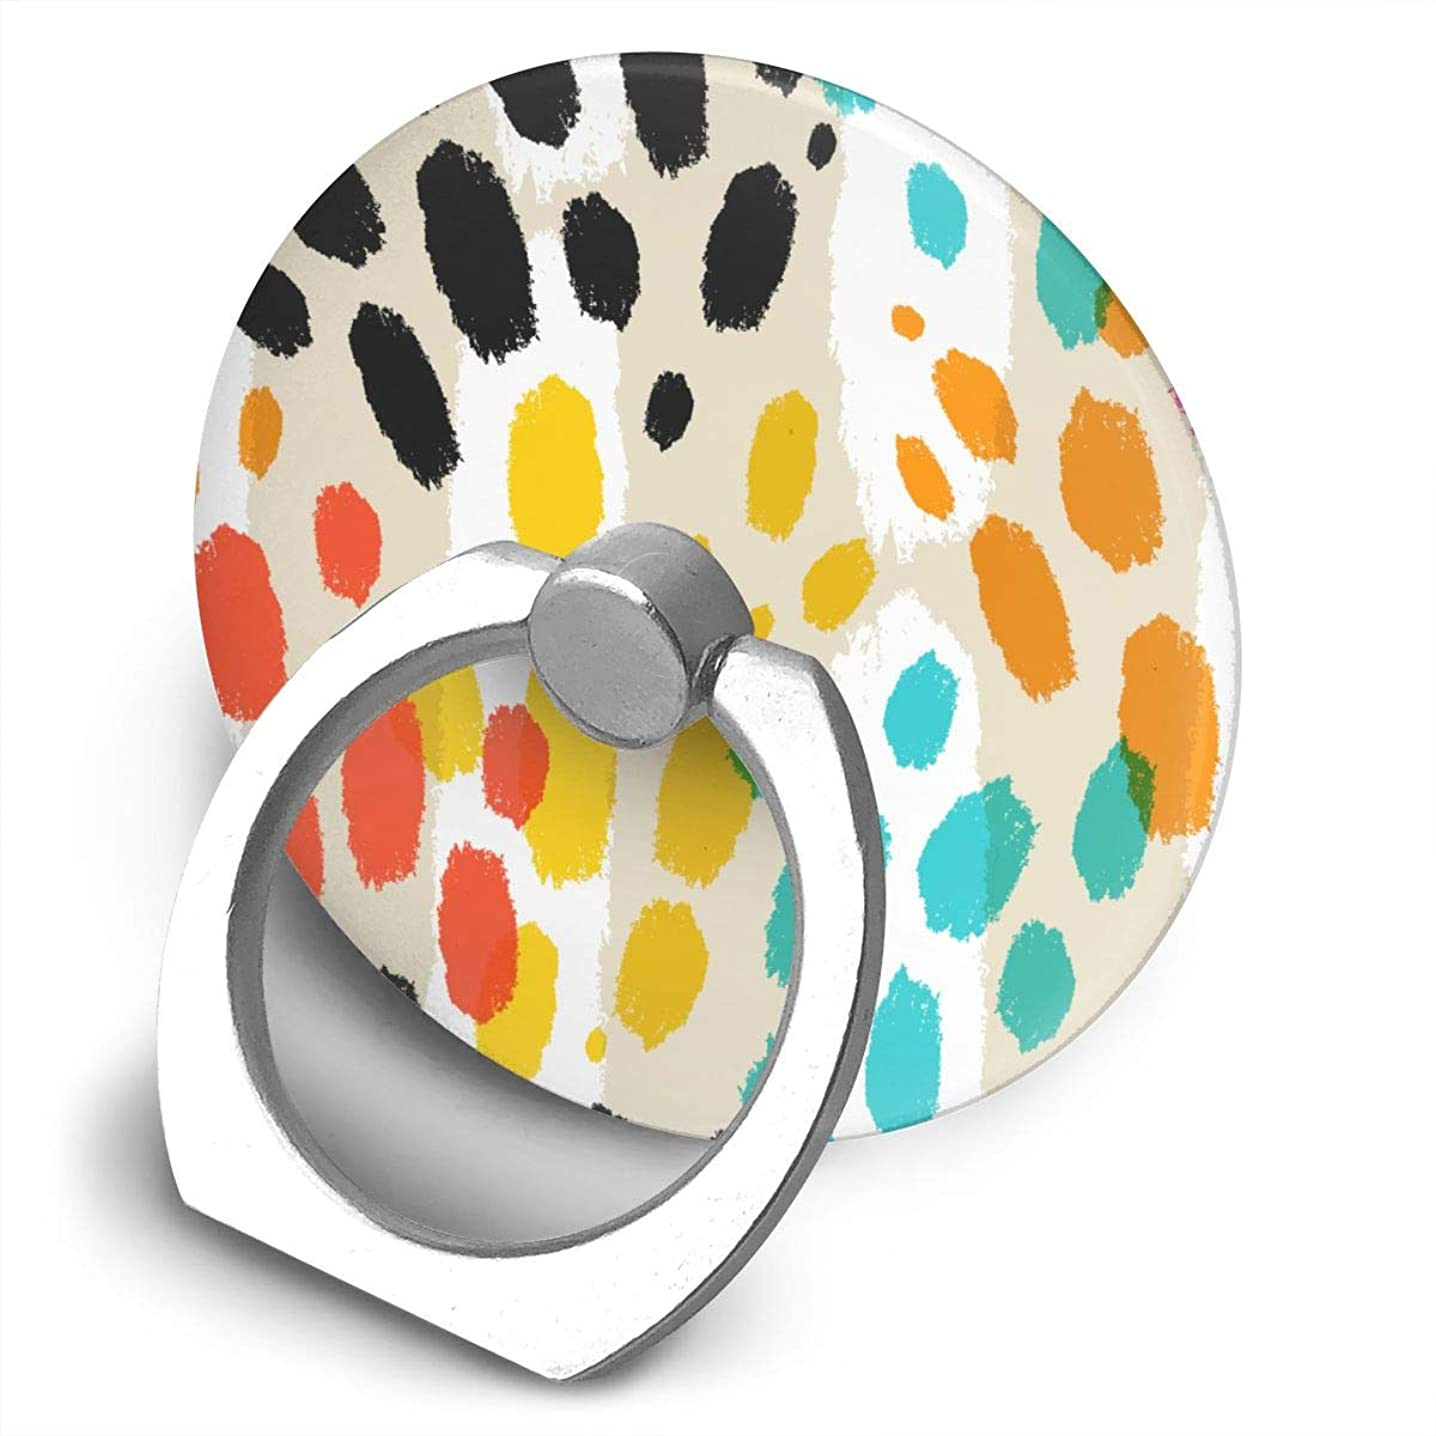 Watercolor Animal Print Phone Finger Ring Stand,Multi-Function 360°,Rotating Ring Bracket Compatible iPhone 5 6 7 8 X Plus Samsung Galaxy Ipad